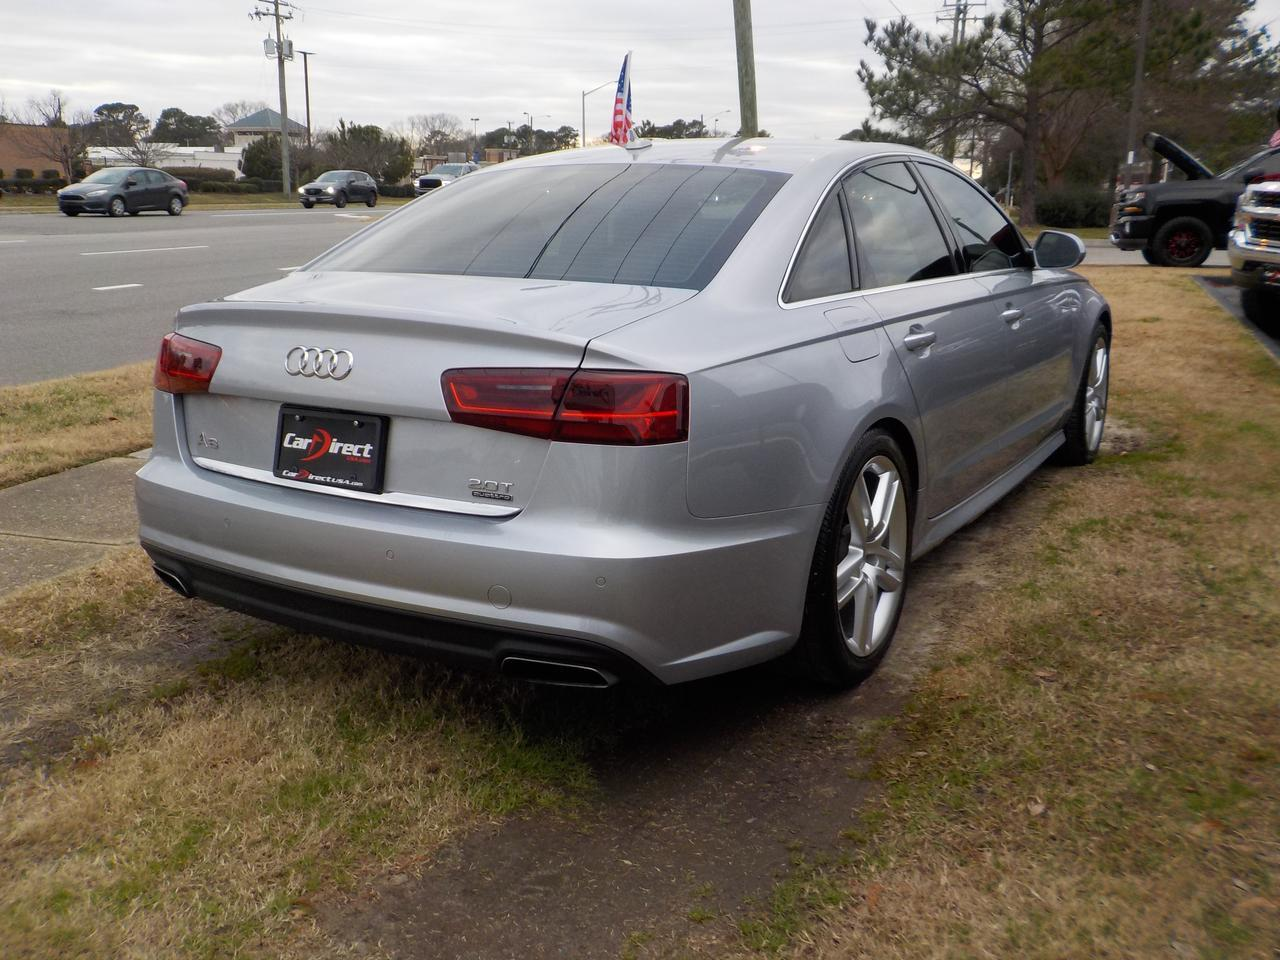 2017 AUDI A6 2.0T QUATTRO PREMIUM AWD, LEATHER, NAVIGATION, BACKUP CAMERA, SUNROOF, HEATED SEATS, ONLY 37K MILES! Virginia Beach VA